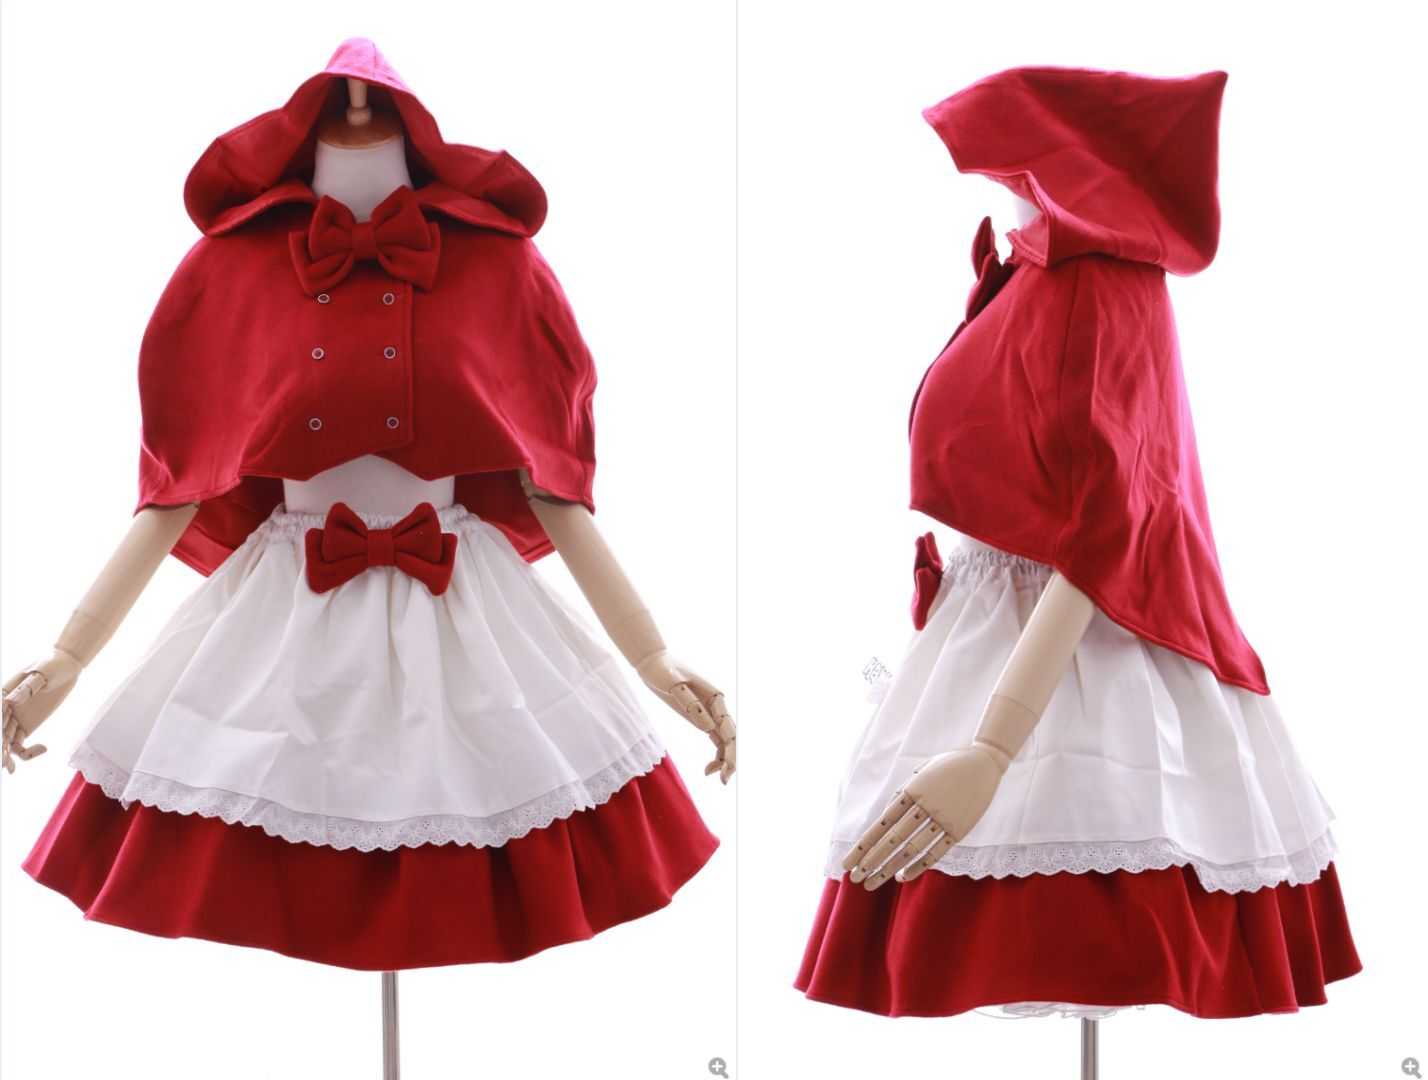 Jl-605 petit chaperon rouge Rouge  riding riding riding hood rouge cape rock gothique Lolita Costume Cosplay c45a09